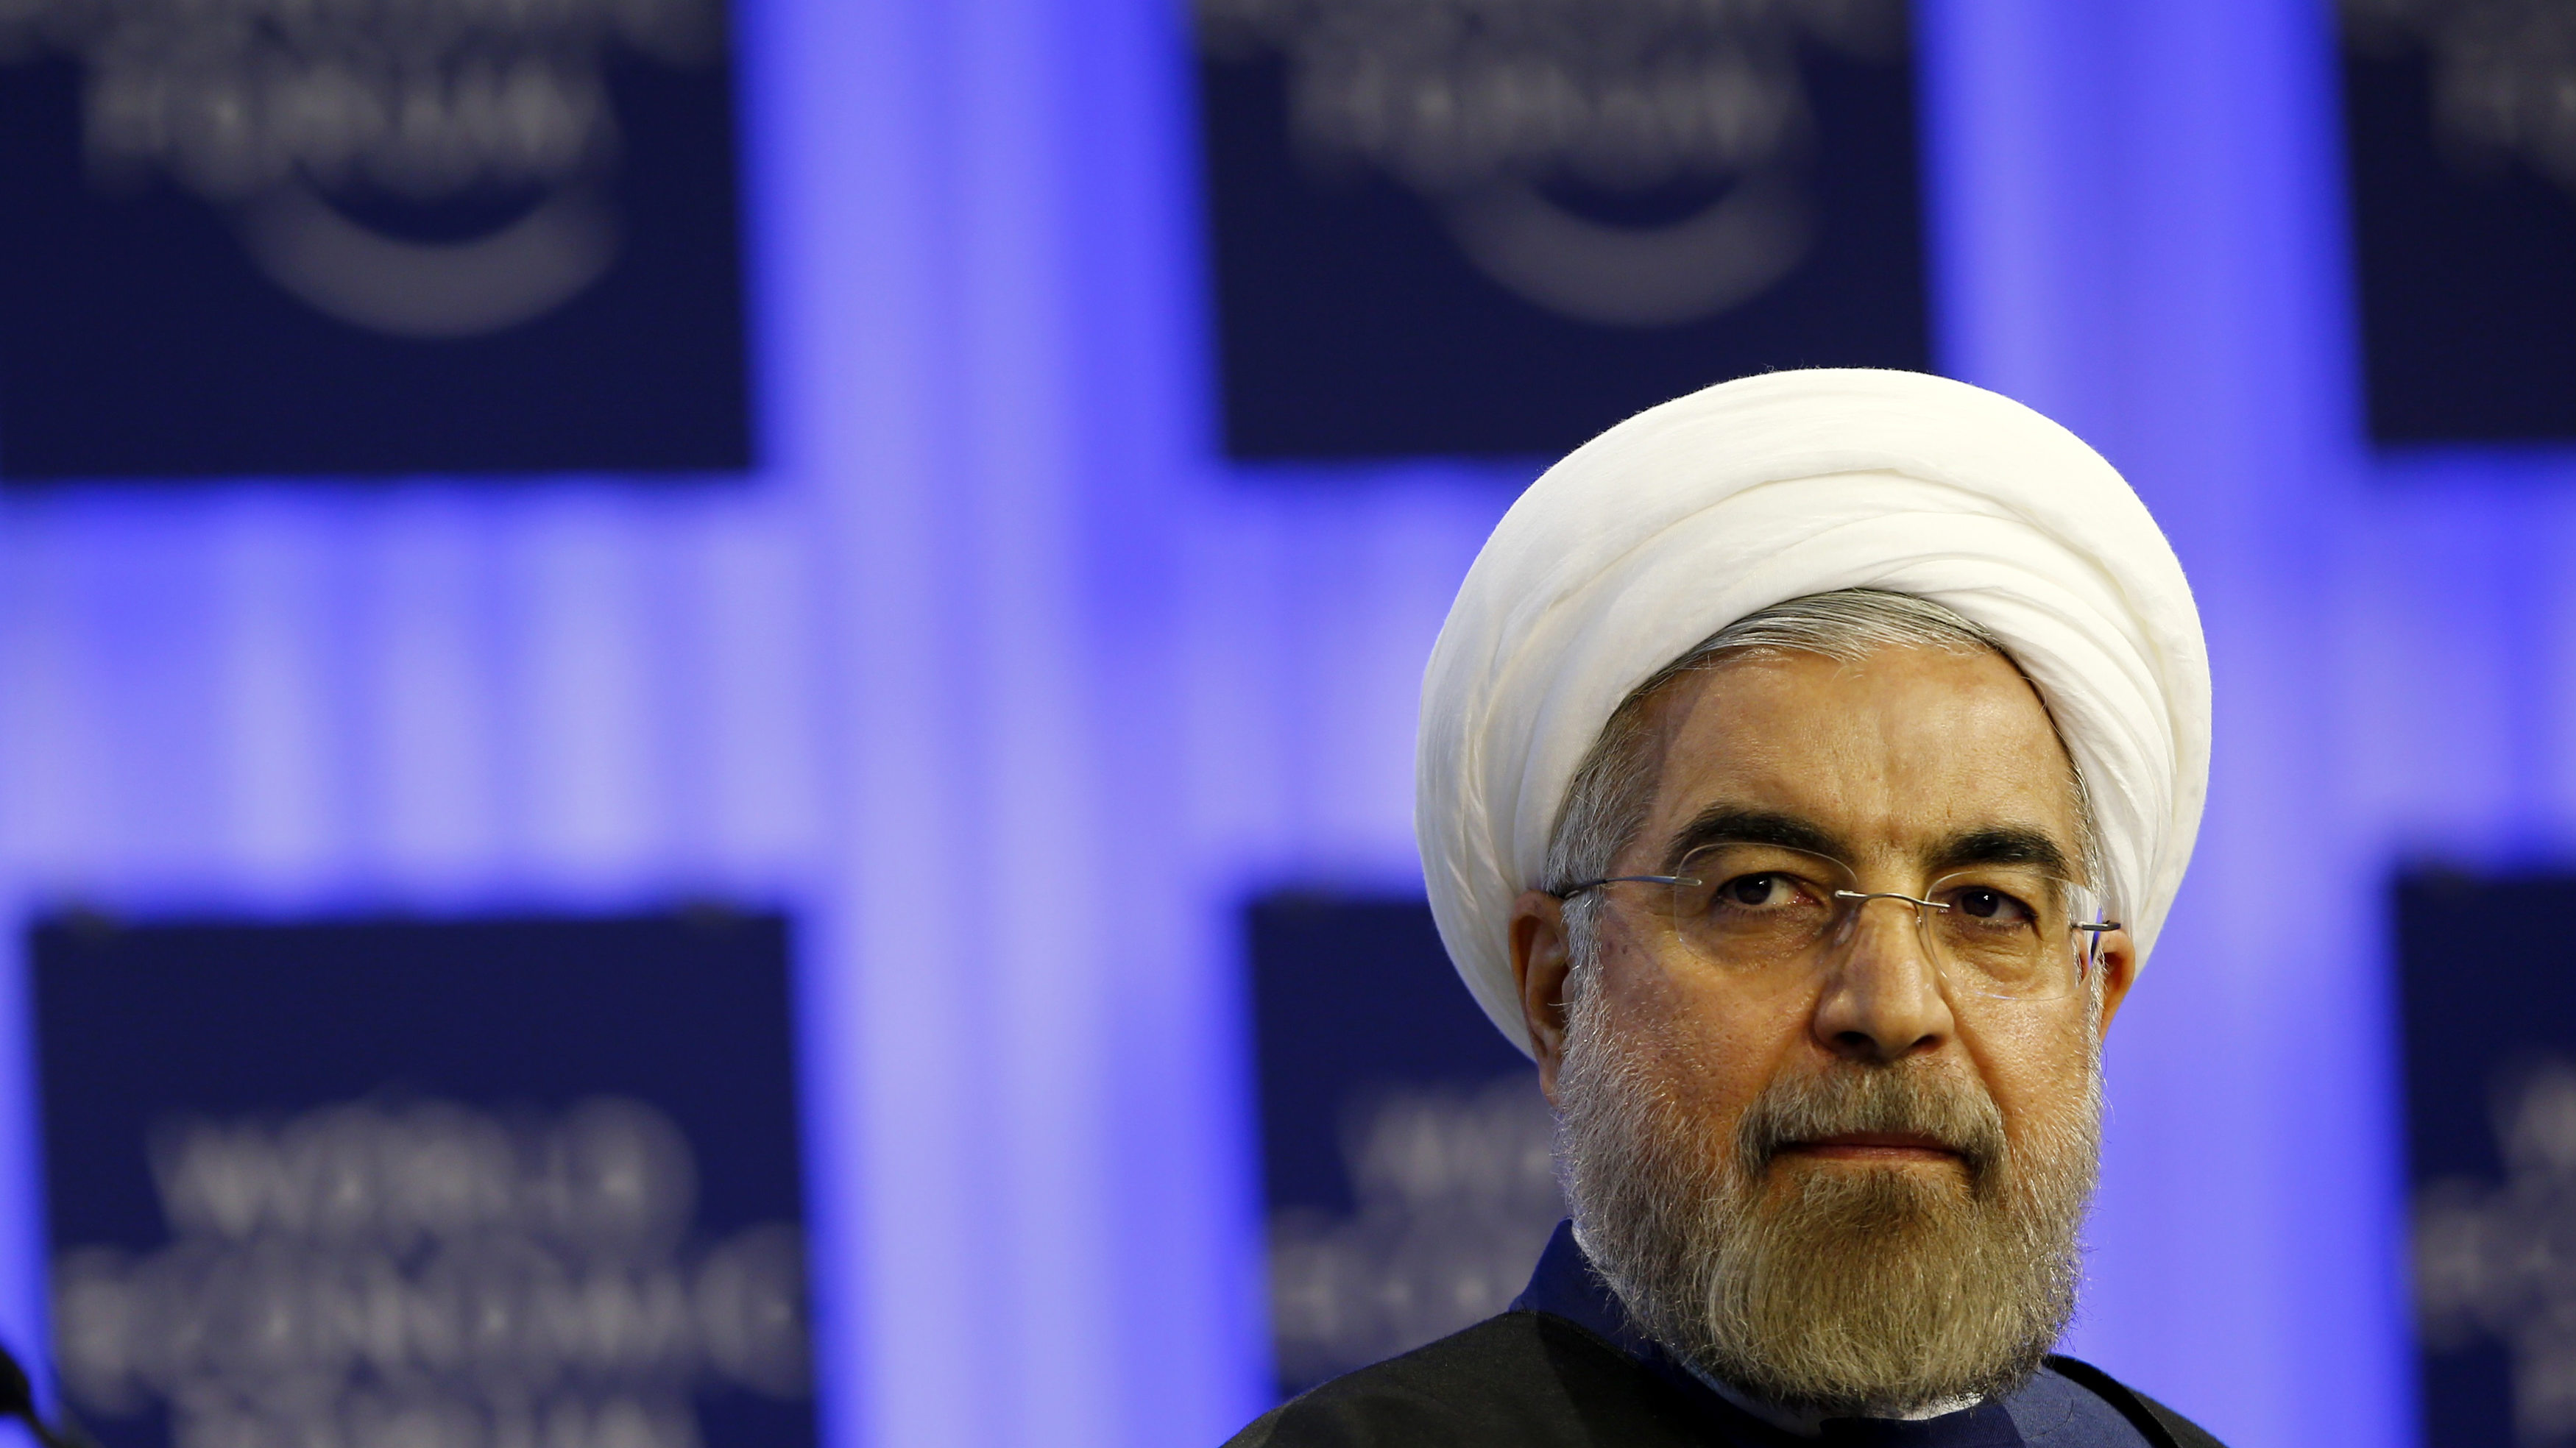 Iran's President Hassan Rouhani attends a session at the annual meeting of the World Economic Forum (WEF) in Davos January 23, 2014. REUTERS/Denis Balibouse